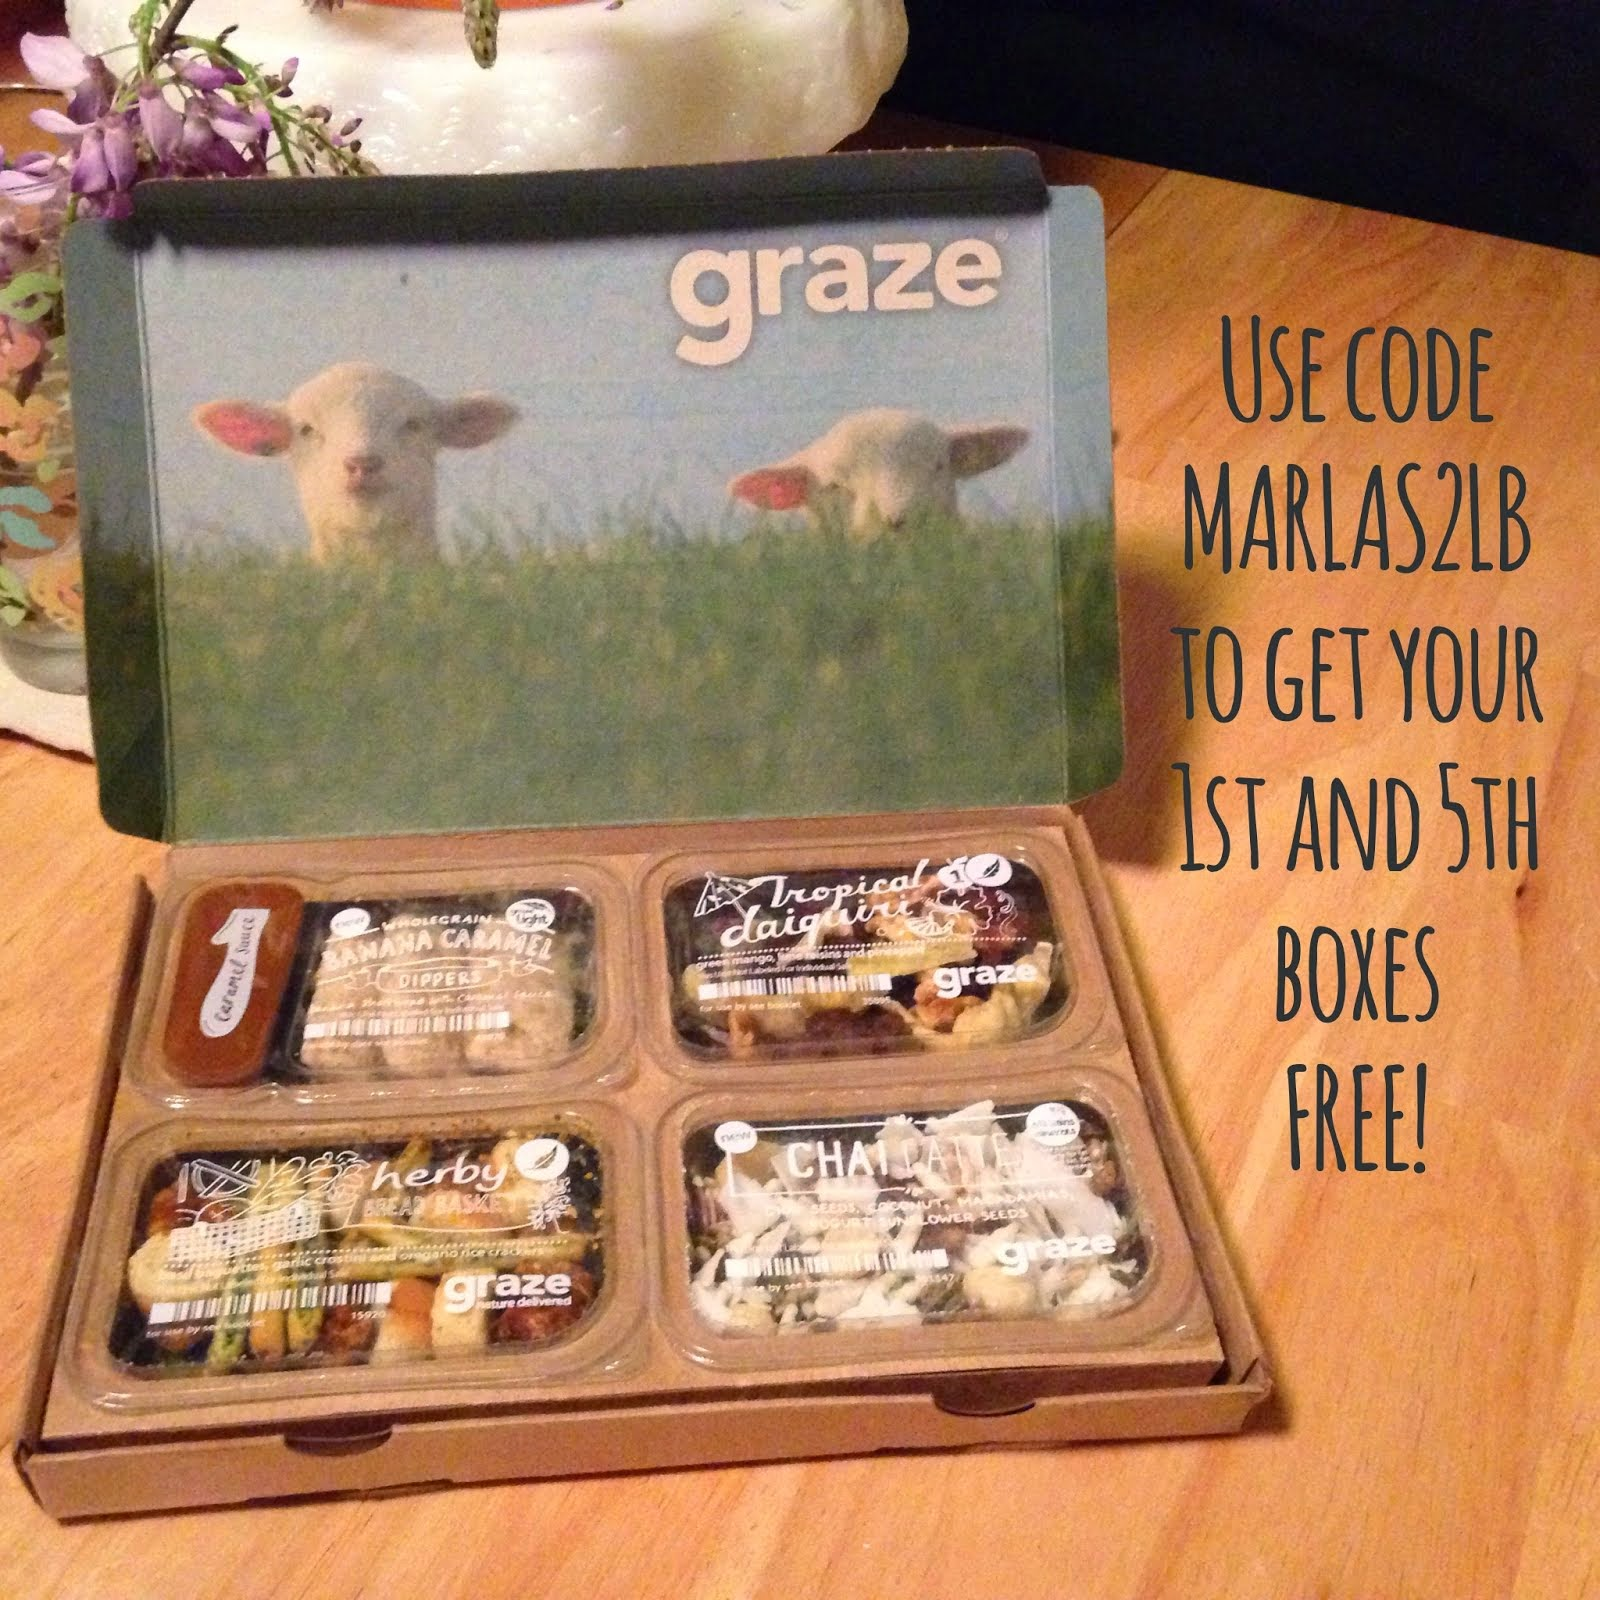 New Customers: Click the box and use code MARLAS2LB to get your 1st and 5th boxes for free!